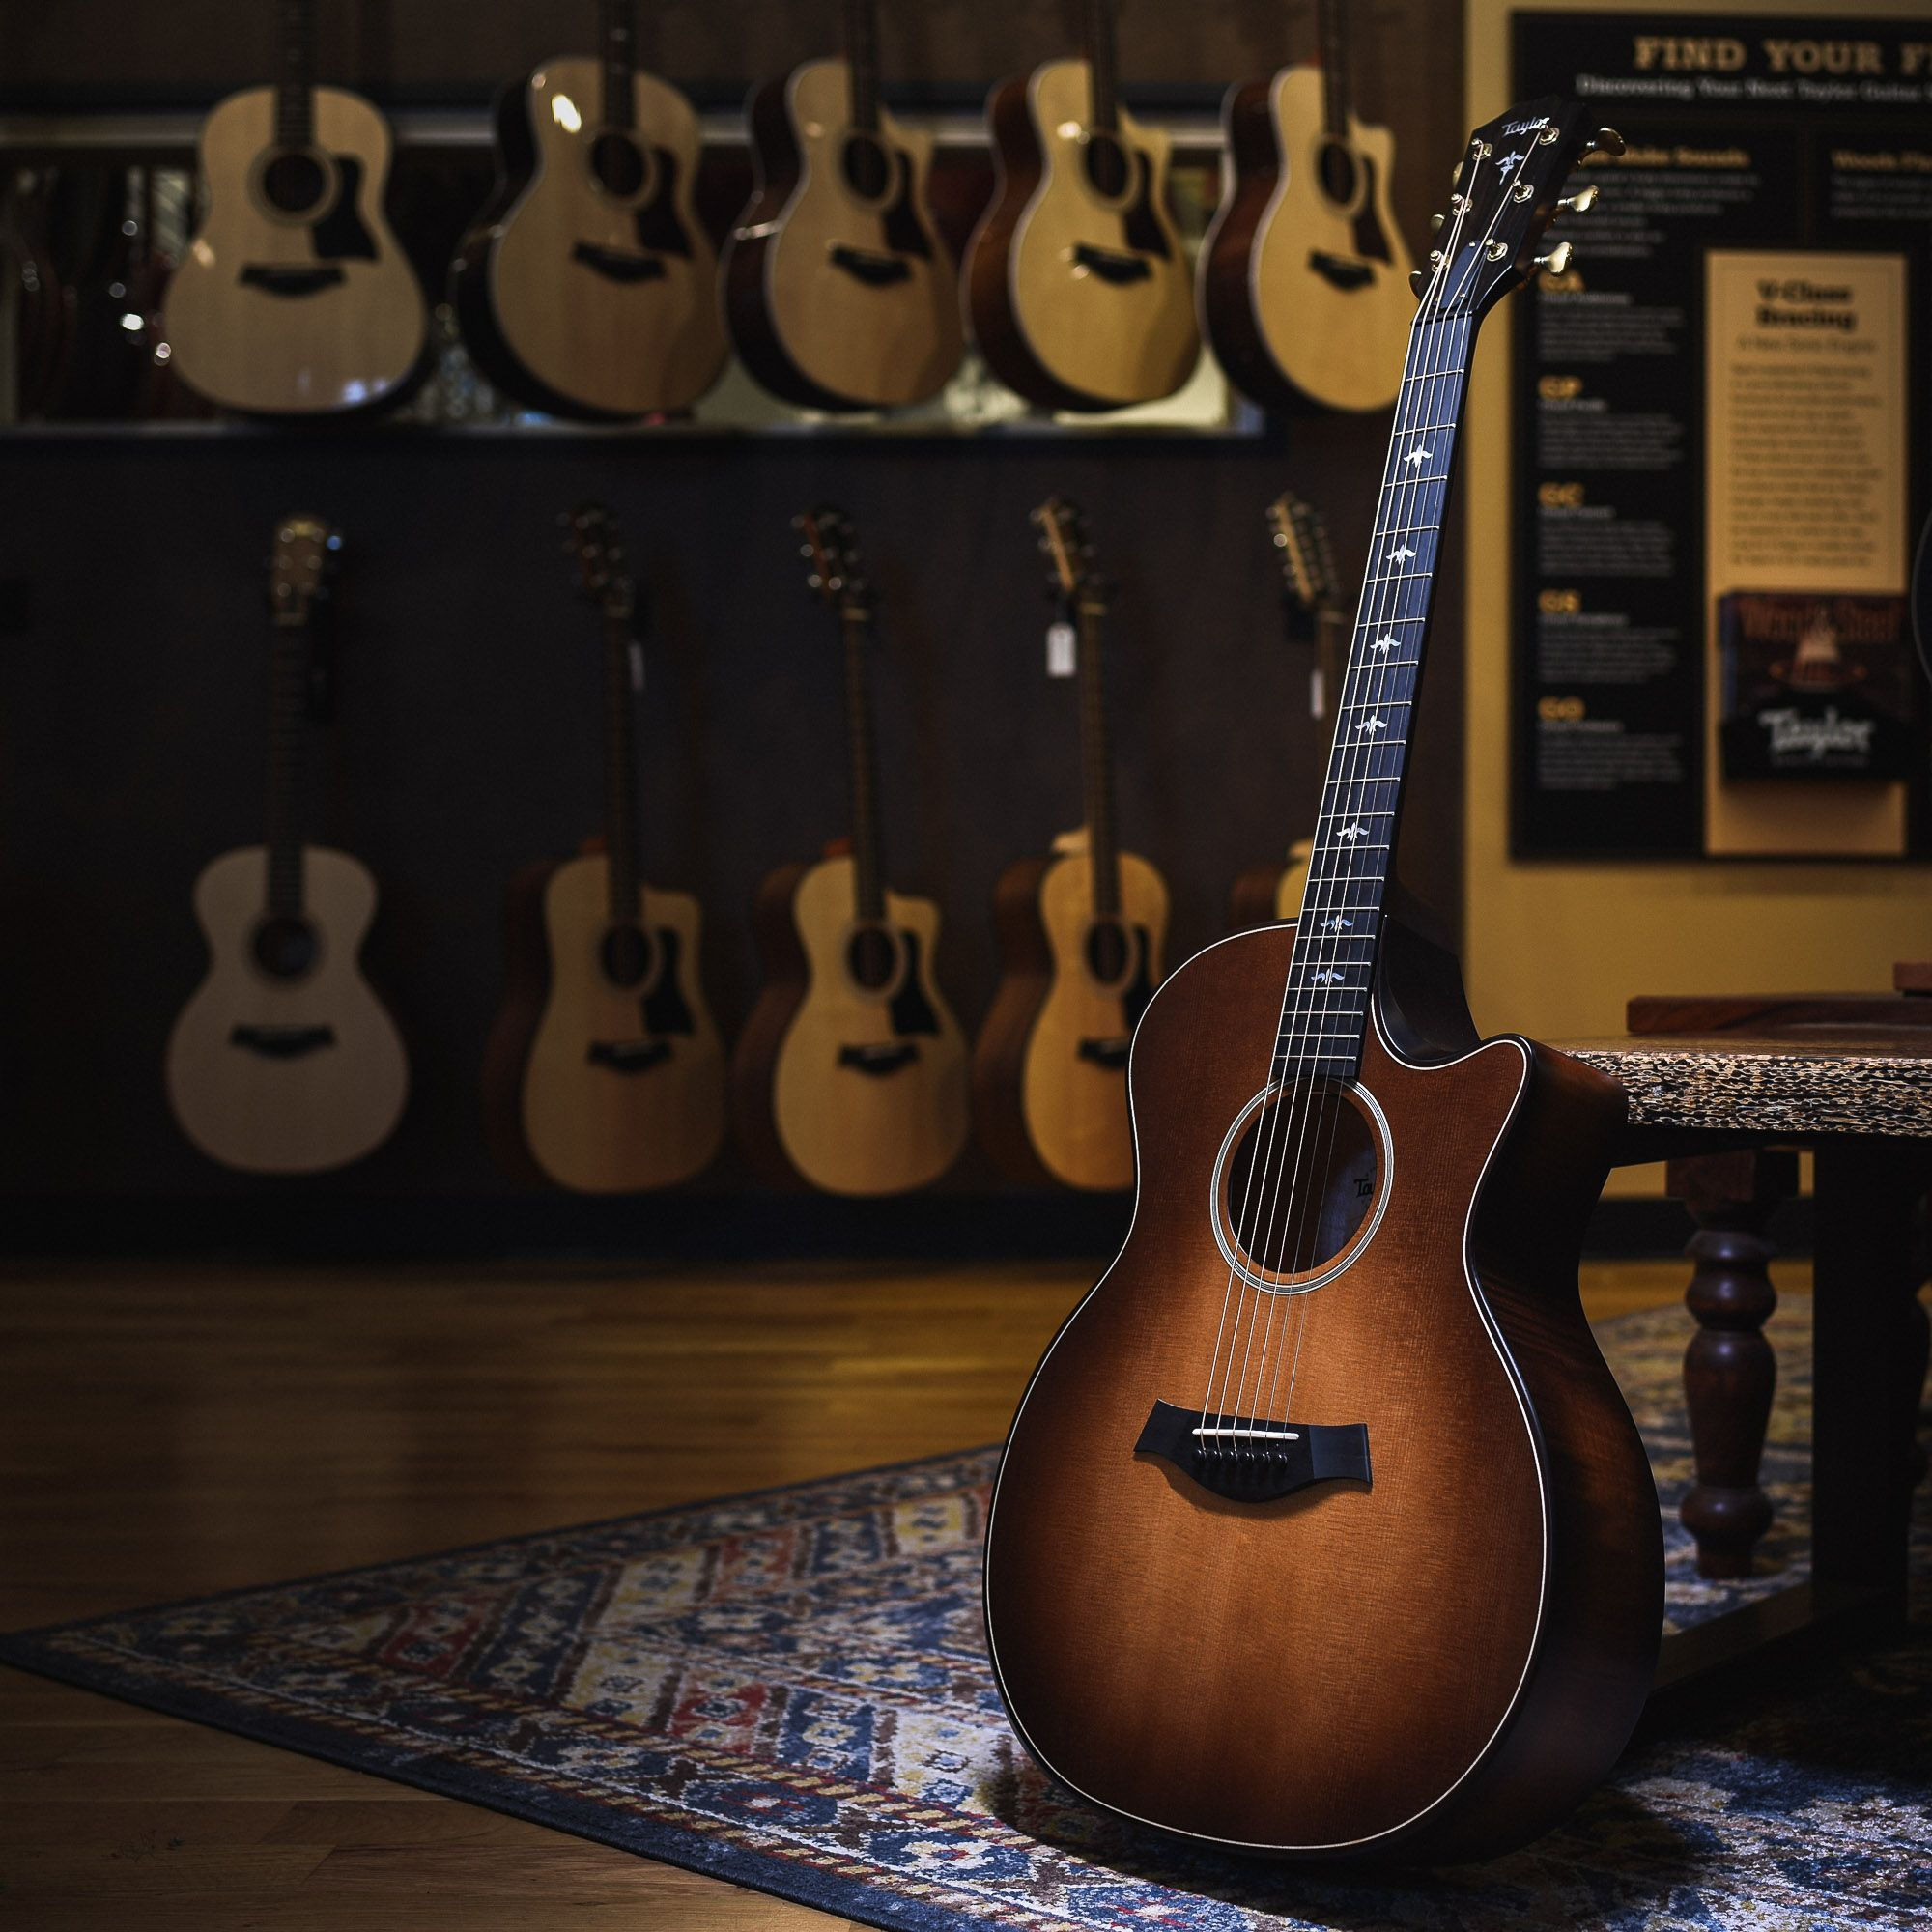 Presenting The Taylor 614ce Builder S Edition Part Of The New Taylor Experience At Chicago Music Exch Taylor Guitars Martin Acoustic Guitar Guitar Photography